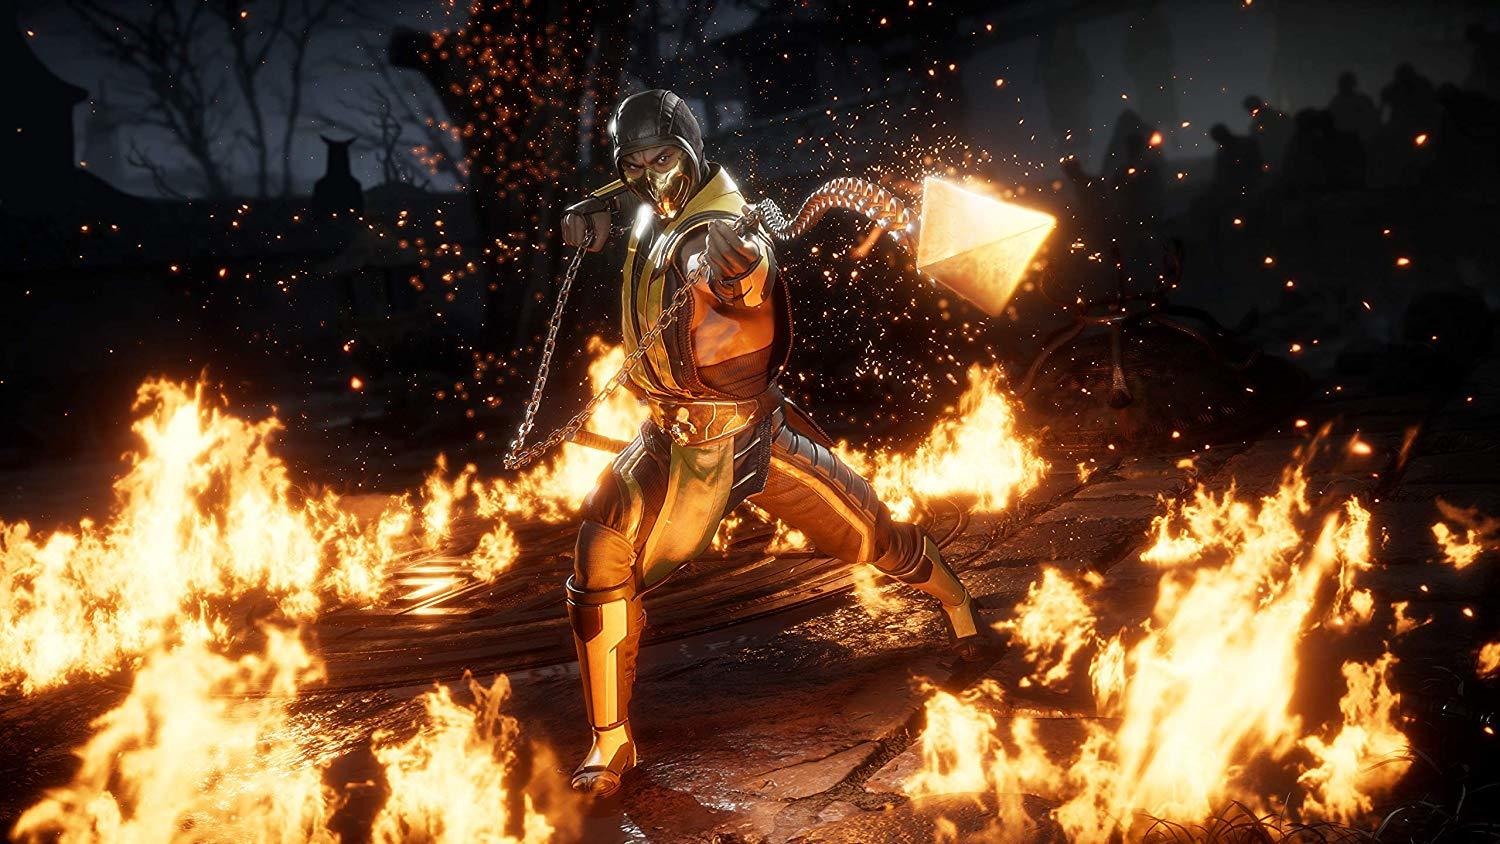 To get into Mortal Kombat 11 closed beta you'll have to pay